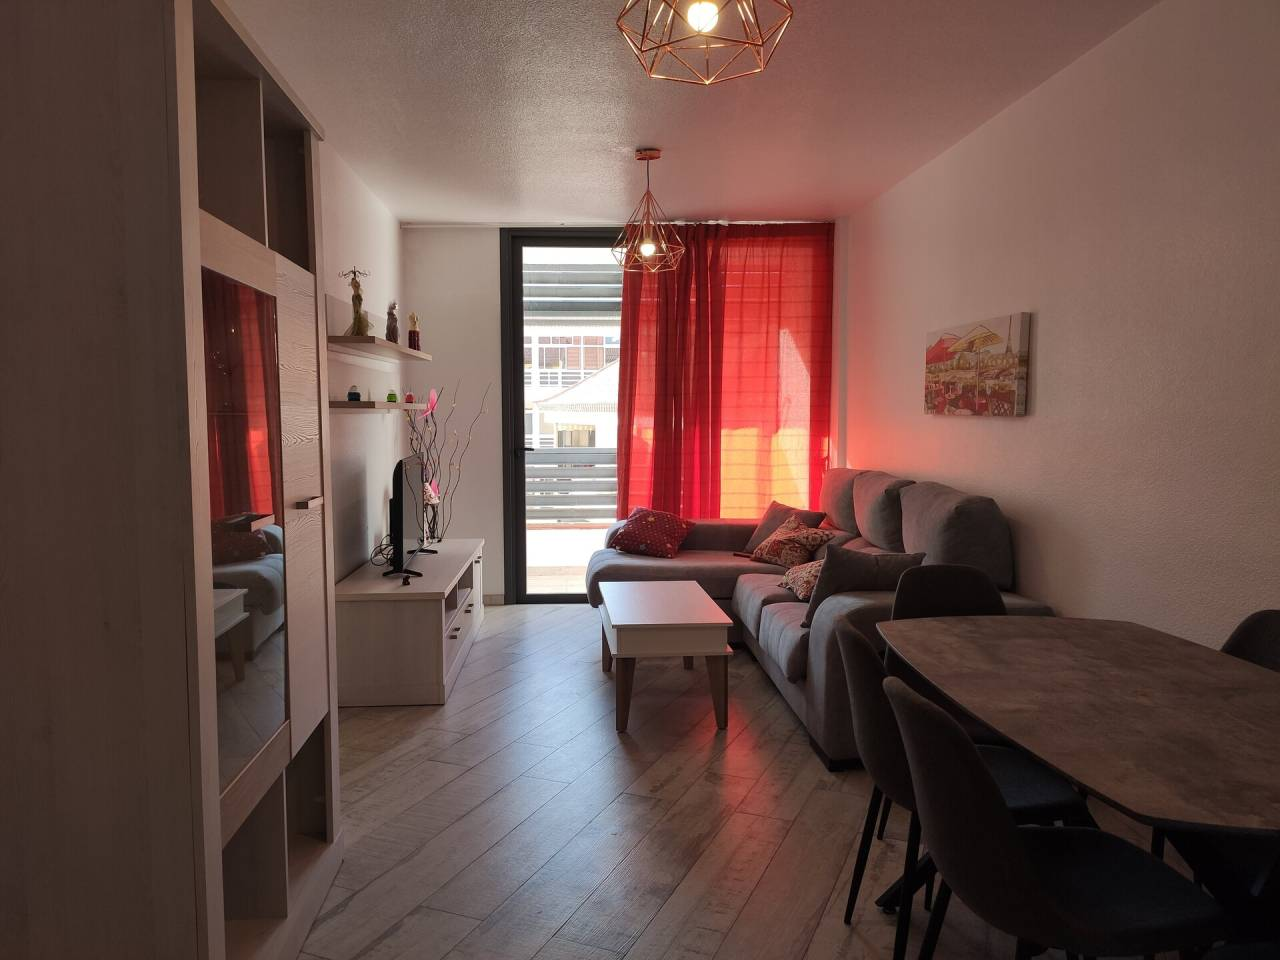 Flat for sale in Los Cristianos